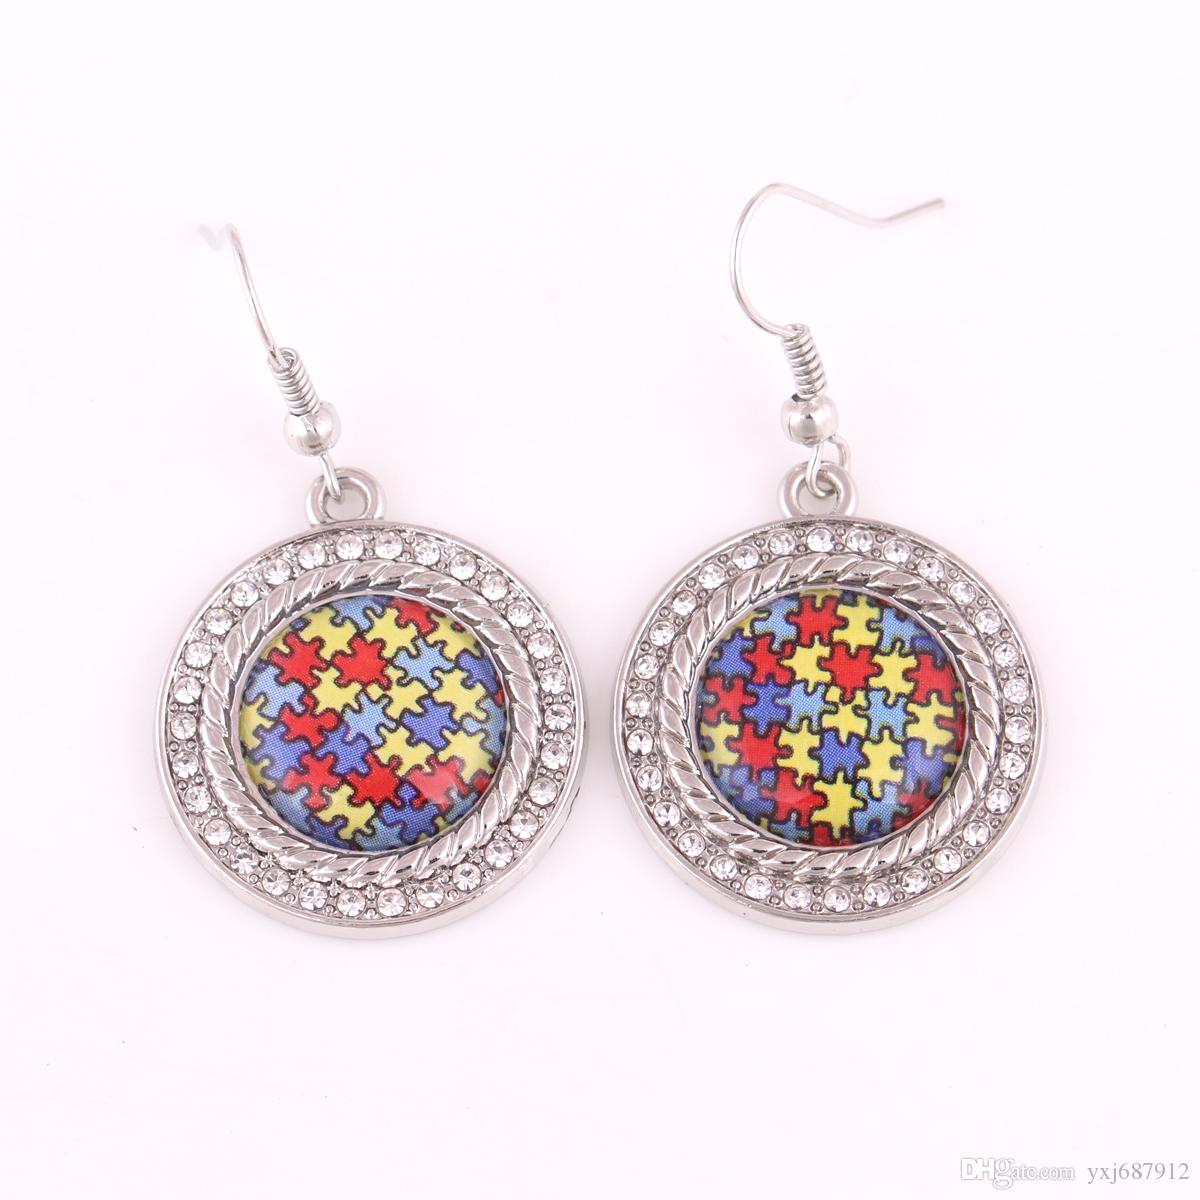 New Arrival Autism Awareness Hope Crystal Round Charm With Holes Jigsaw Puzzle Piece Crystal Earrings Best Gift